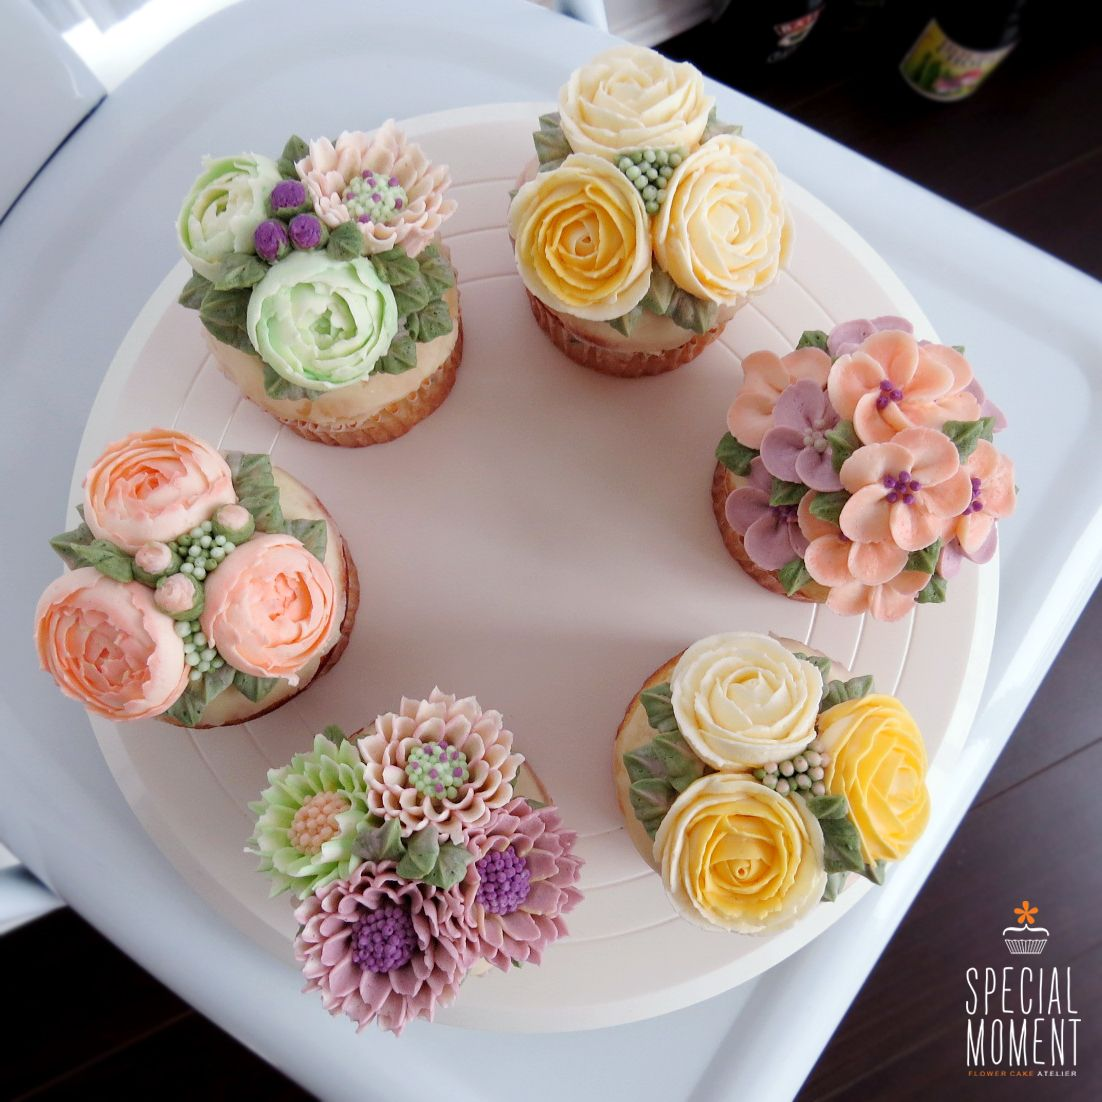 Wedding Cupcake Decorating Ideas: +Vanilla Chocolate Flower Buttercream Cupcake For Friends